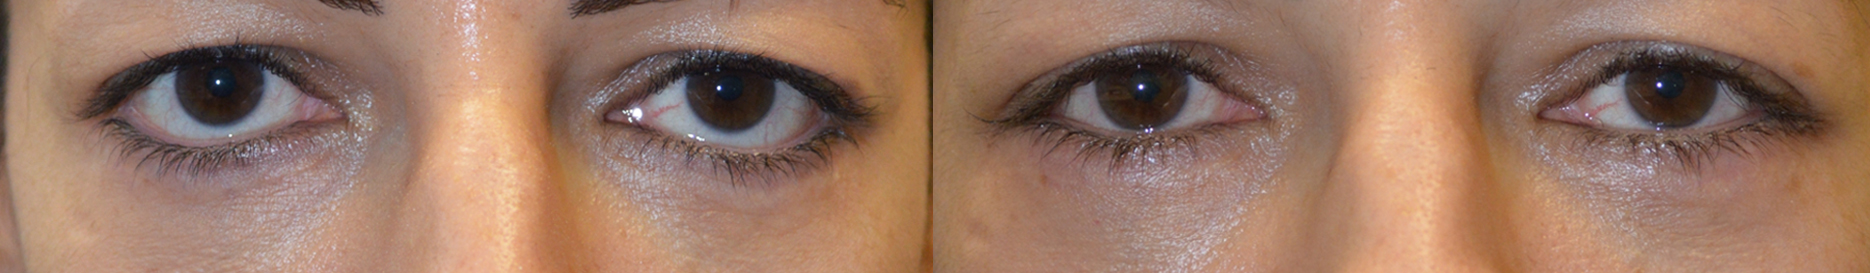 Before (left) and after (right) 44-year-old female, with post-blepharoplasty lower eyelid retraction with sclera show and loss of natural eye shape, underwent corrective revision lower eyelid surgery, namely lower eyelid retraction repair, using internal eyelid approach with soof lift and alloderm spacer graft and canthoplasty.